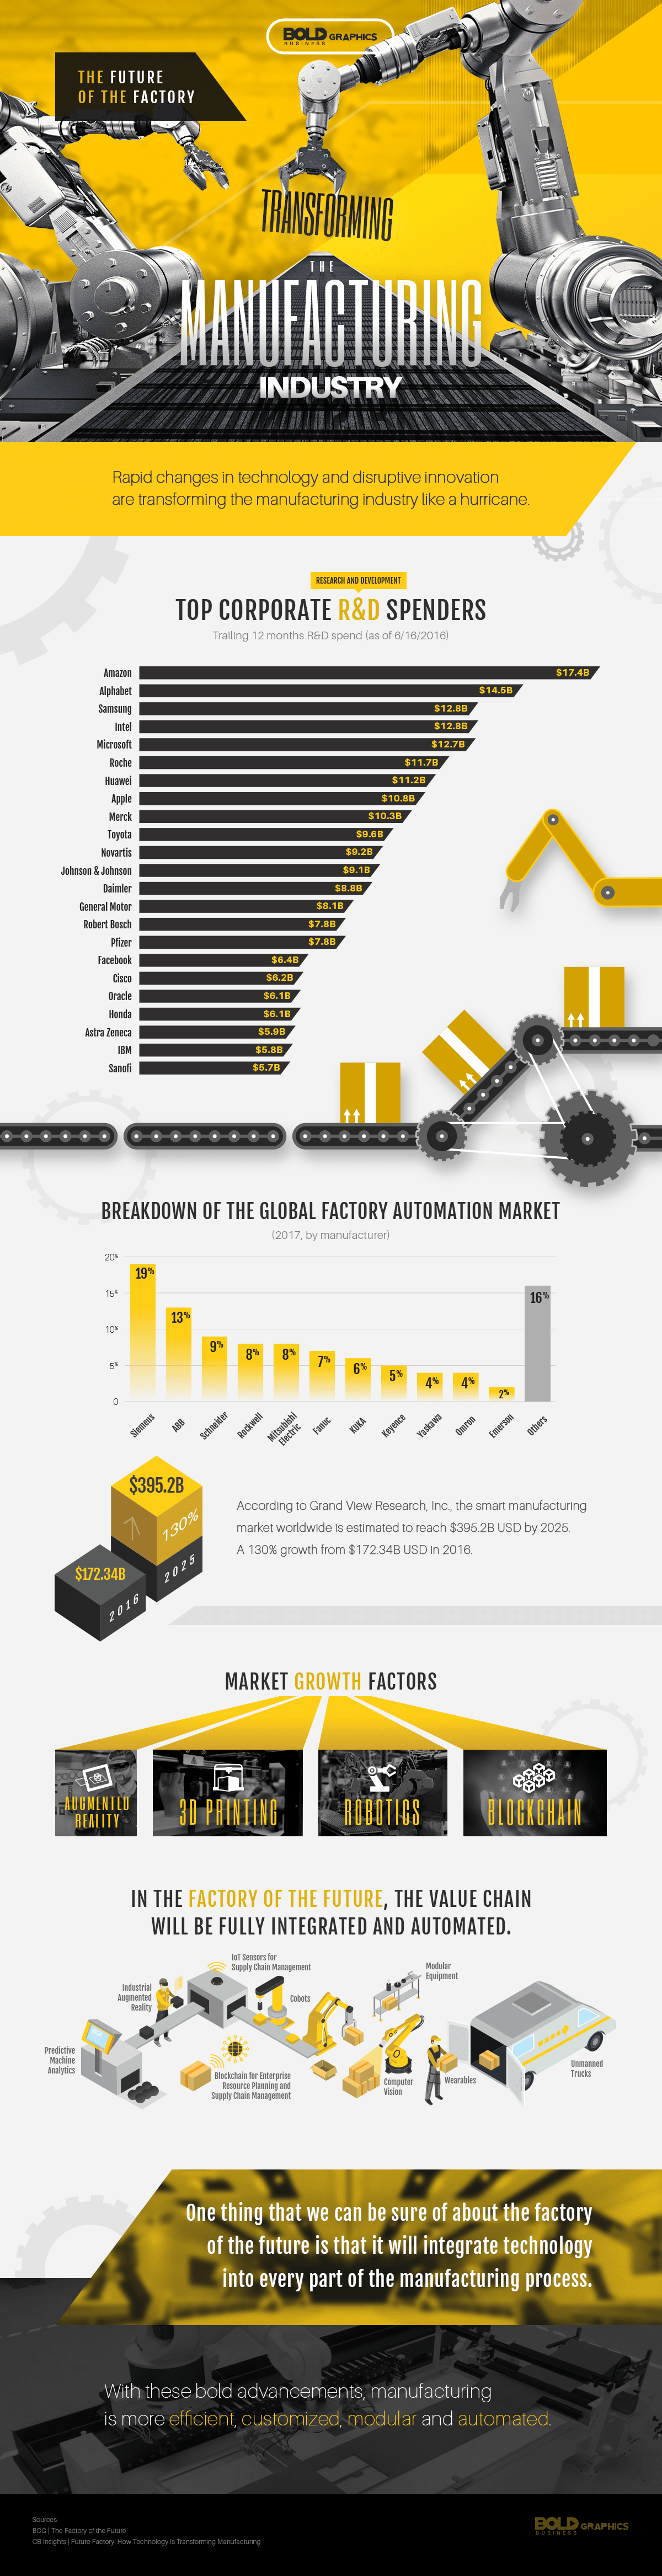 manufacturing industry,manufacturing definition,manufacturing companies,manufacturing industry trends 2018,manufacturing industry news,manufacturing industry challenges,manufacturing industry data,factory automation jobs,factory automation systems,factory automation company,factory automation market,factory automation robots,factory automation market size,factory automation news,factory automation advantages,factory automation and robotics,factory automation infographic